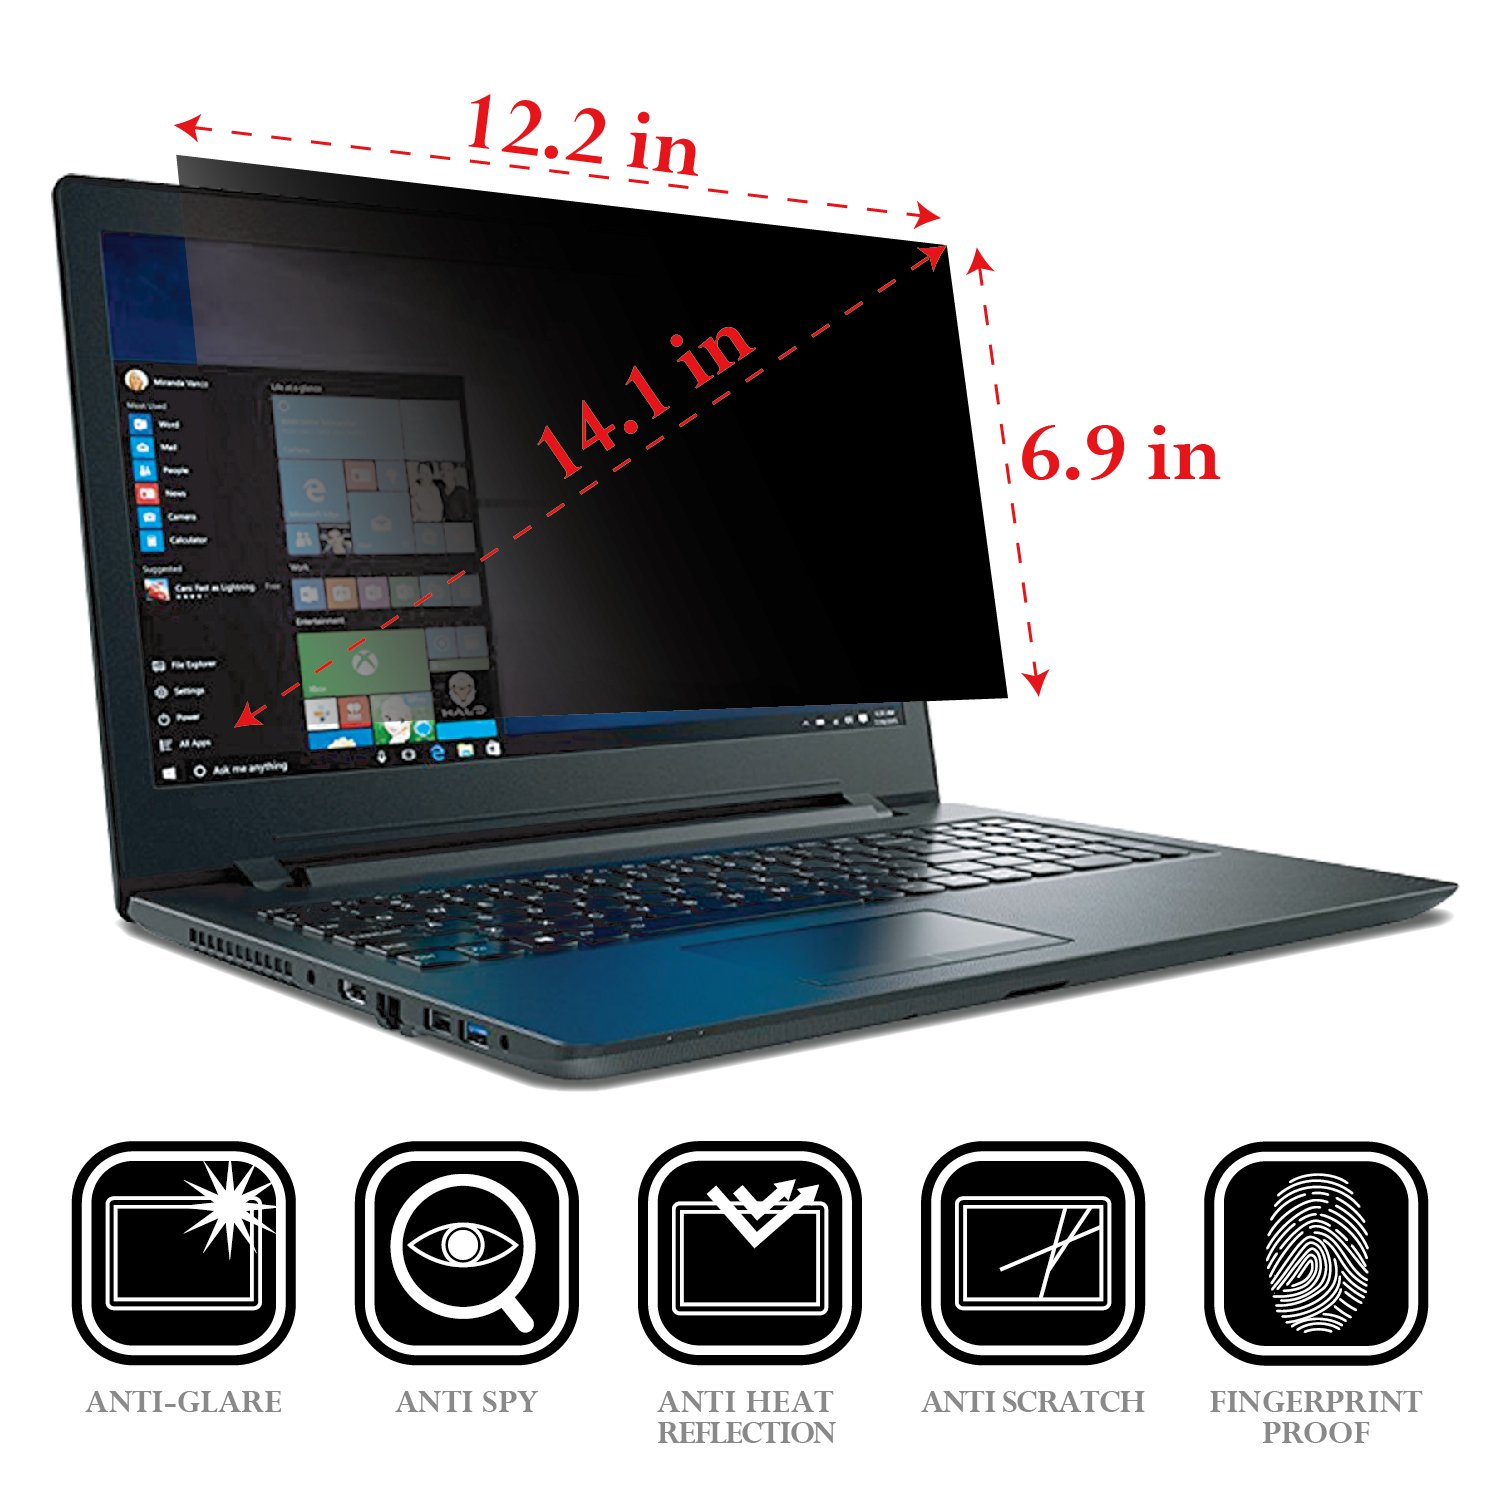 Flexzion Privacy Screen Filter Anti-Glare Protector Film Damage Scratch Proof for 14.1 Inch Widescreen Displays PC Laptop Desktop Notebook Computer LCD Monitor